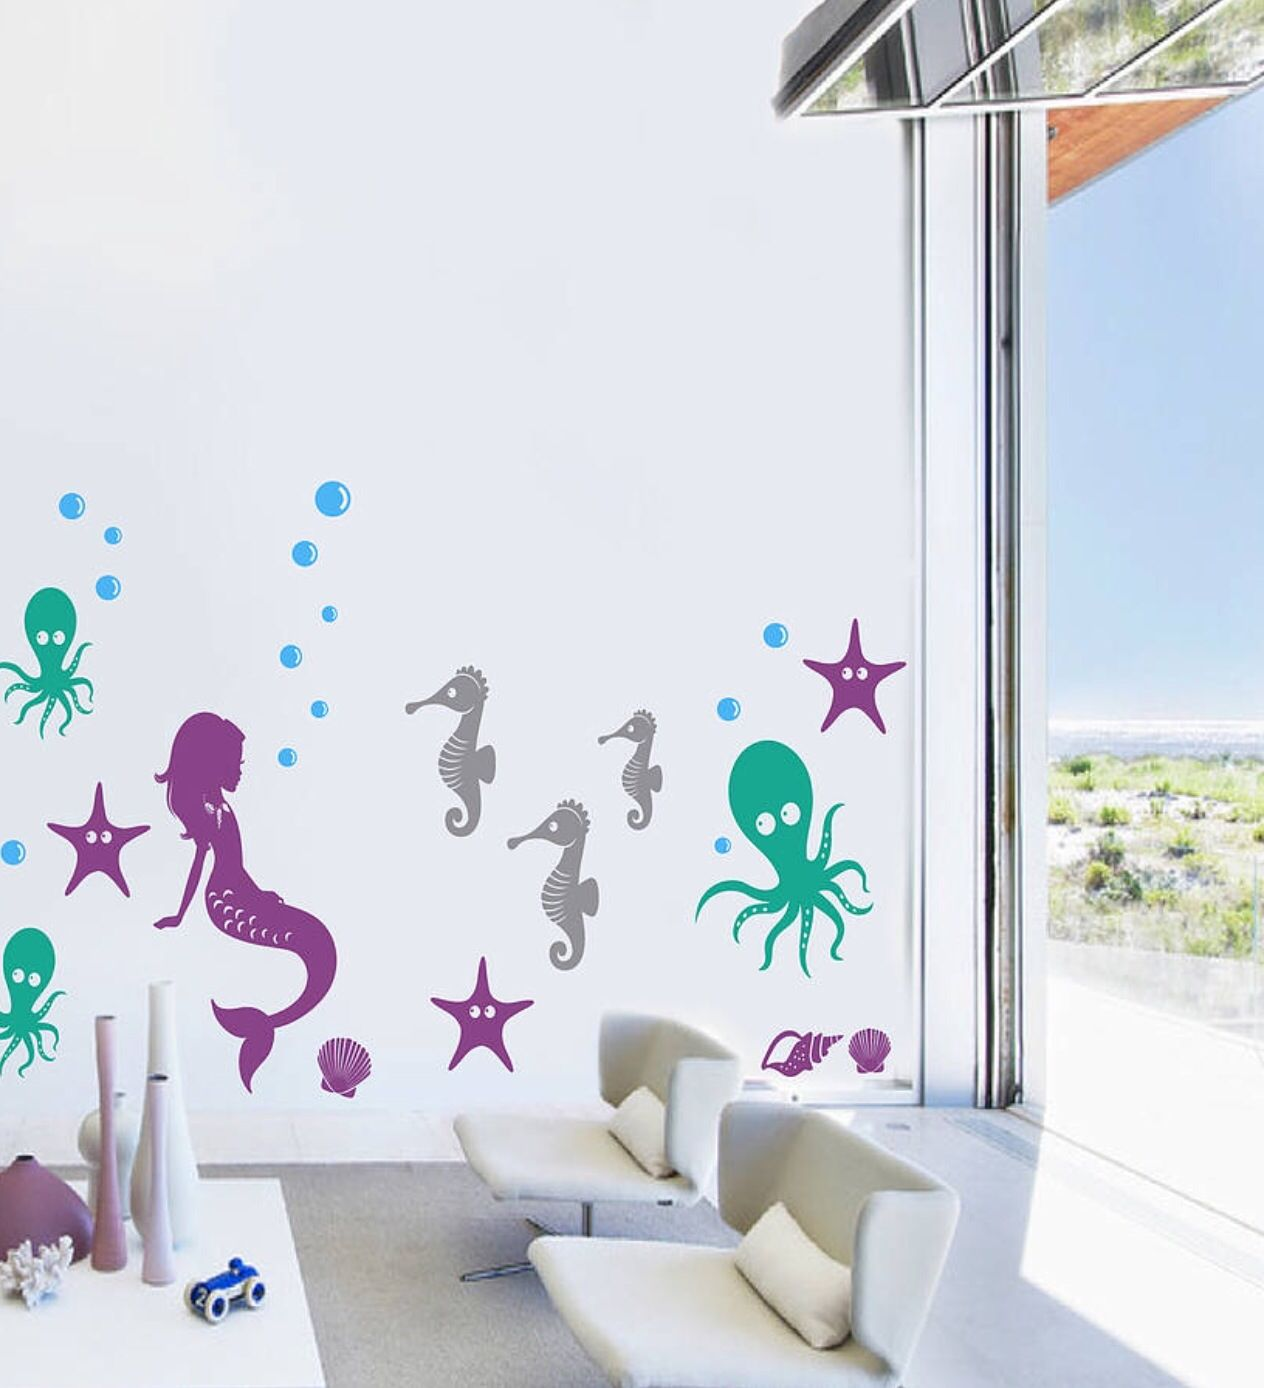 The Stickers Wall Images Home Wall Decoration Ideas - Wall decals in divisoria